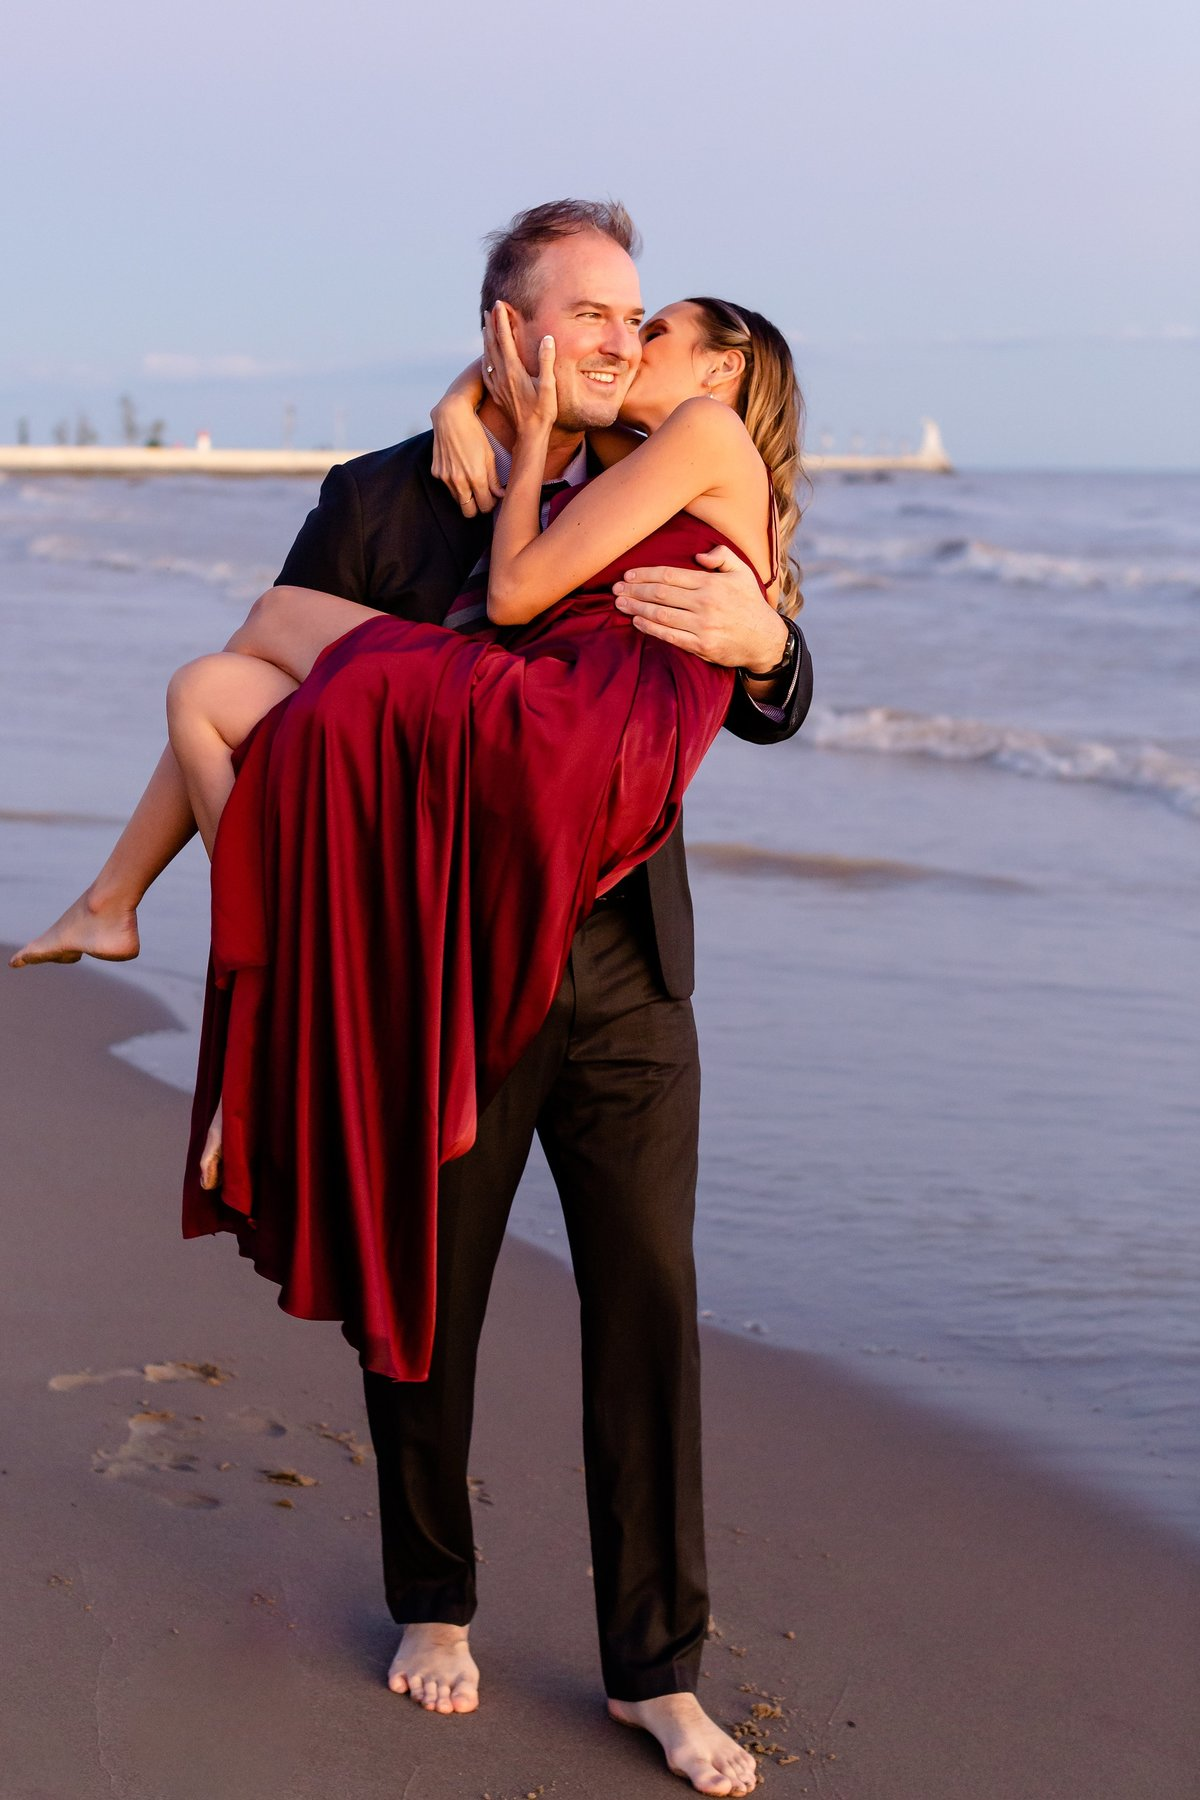 Handsome-guy-carries-his-future-wife-wearing-a-fancy-red-dress-on-port-stanley-beach-during-their-sunset-engagement-session